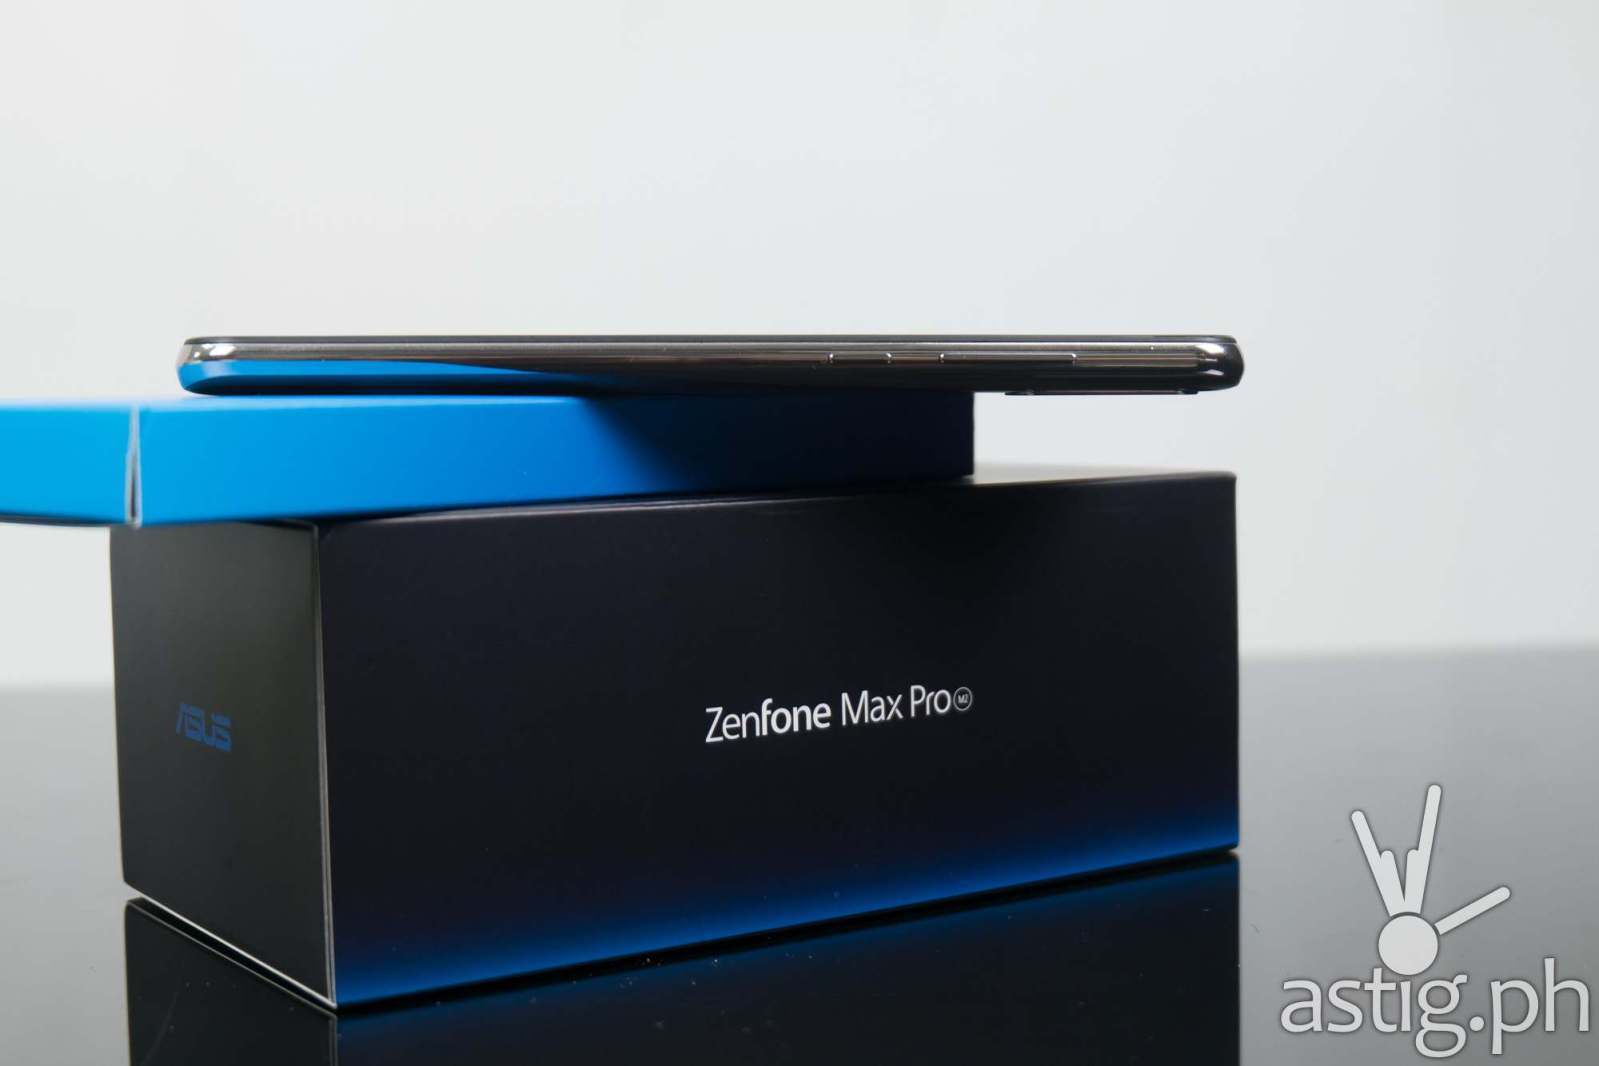 ASUS ZenFone Max Pro M2 (Philippines) - side showing volume and power